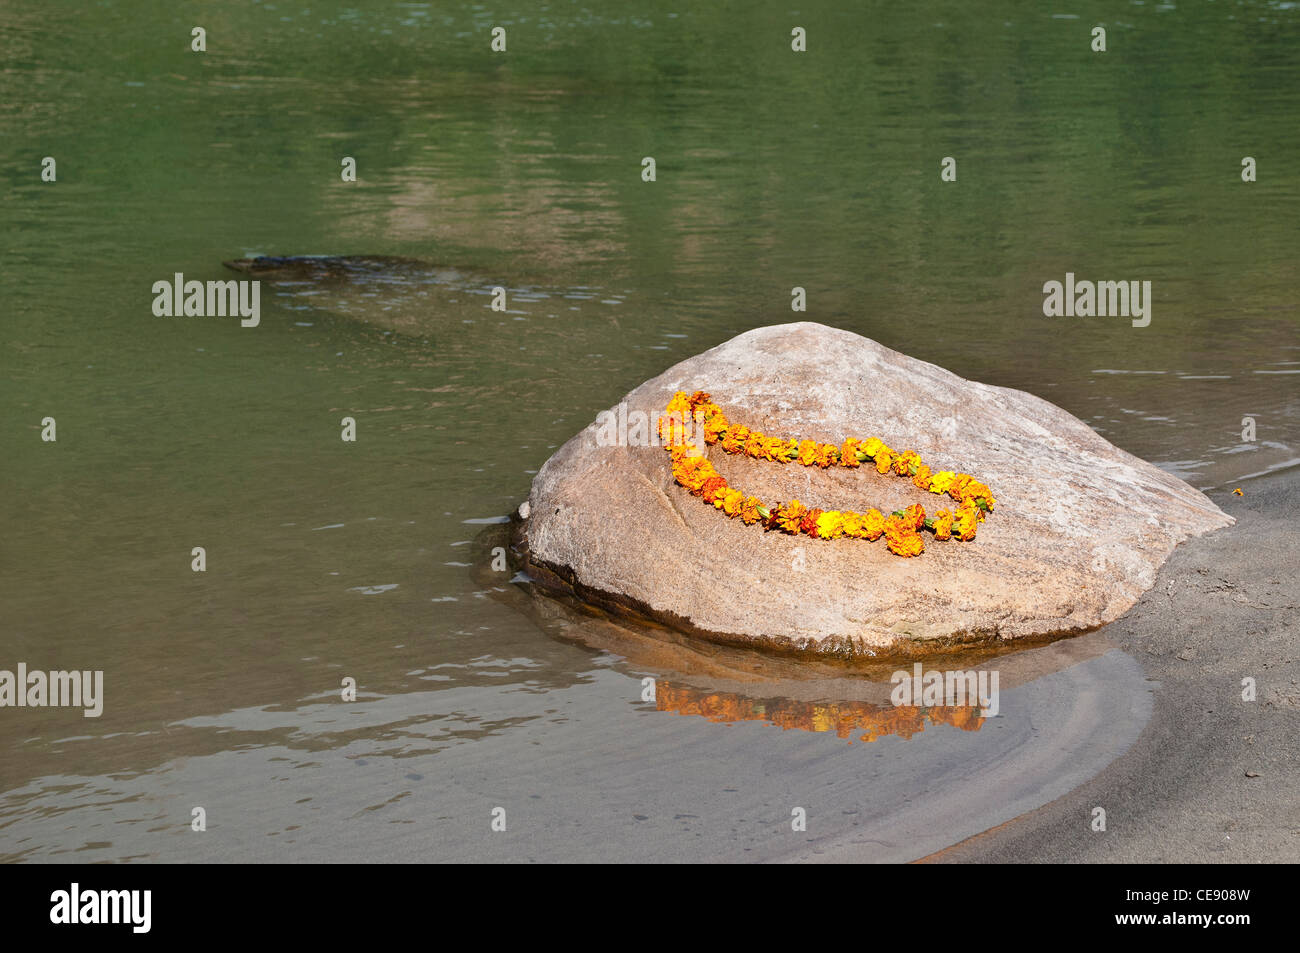 Garland of marigold flowers on a stone in the Ganges river, Rishikesh, Uttarakhand, India - Stock Image